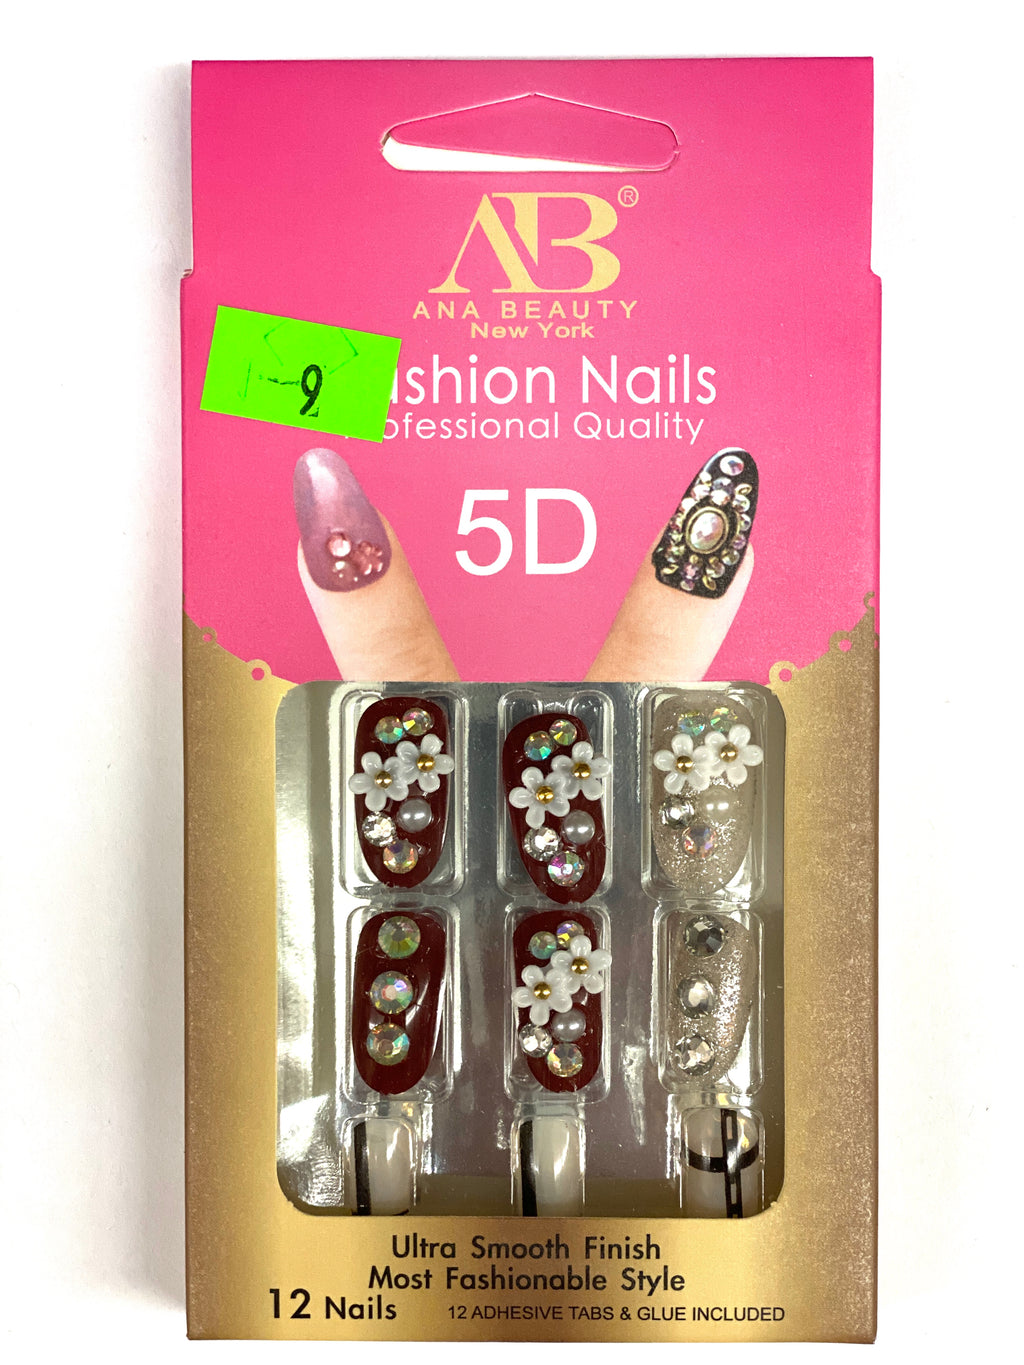 Ana Beauty Fashion Nails 5D - B9